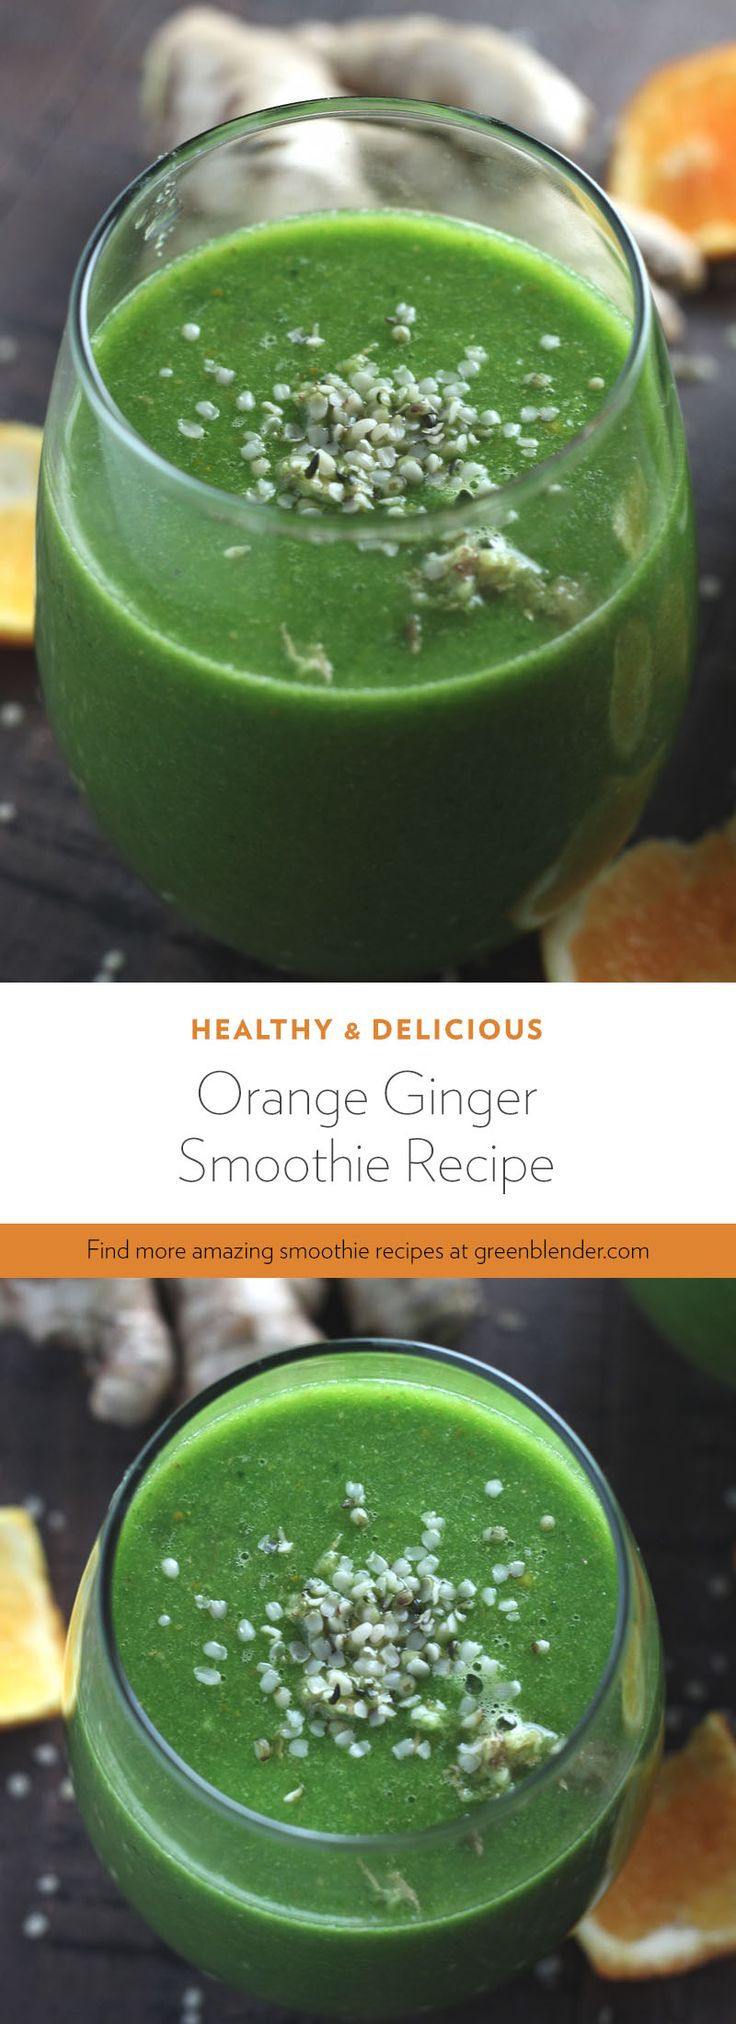 1 1/2 oz baby spinach 2 tangerines - peeled 1 banana - peeled 1/2 inch ginger 1 tbsp mesquite 1 tbsp hemp seeds 1 cup water 1 cup ice